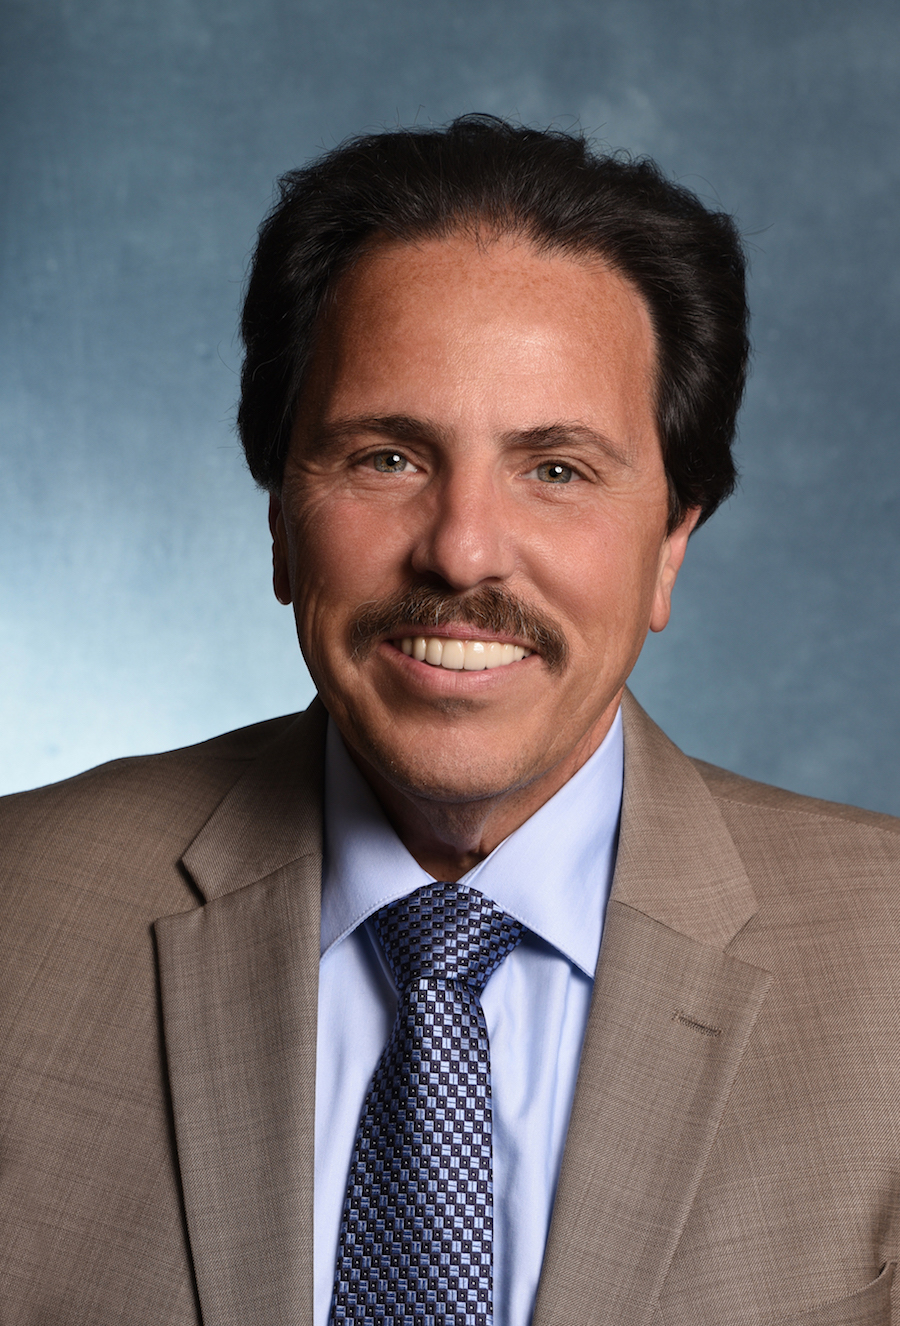 John Mannino is the owner and founder of Uptown Electric -